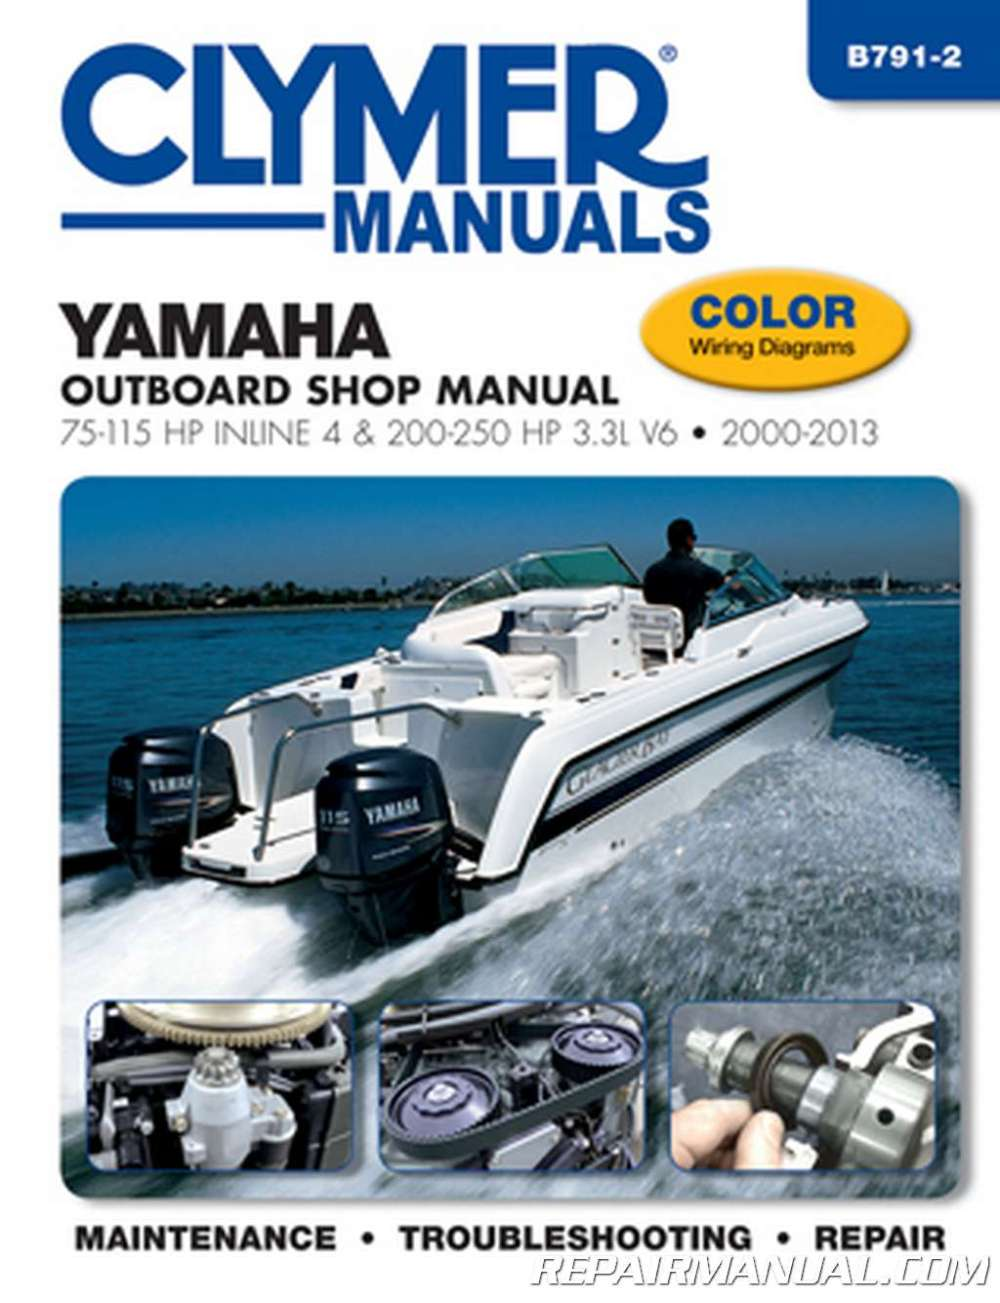 medium resolution of 2000 2013 yamaha outboard shop manual 75 115 hp inline 4 and 200 250 hp 3 3l v6